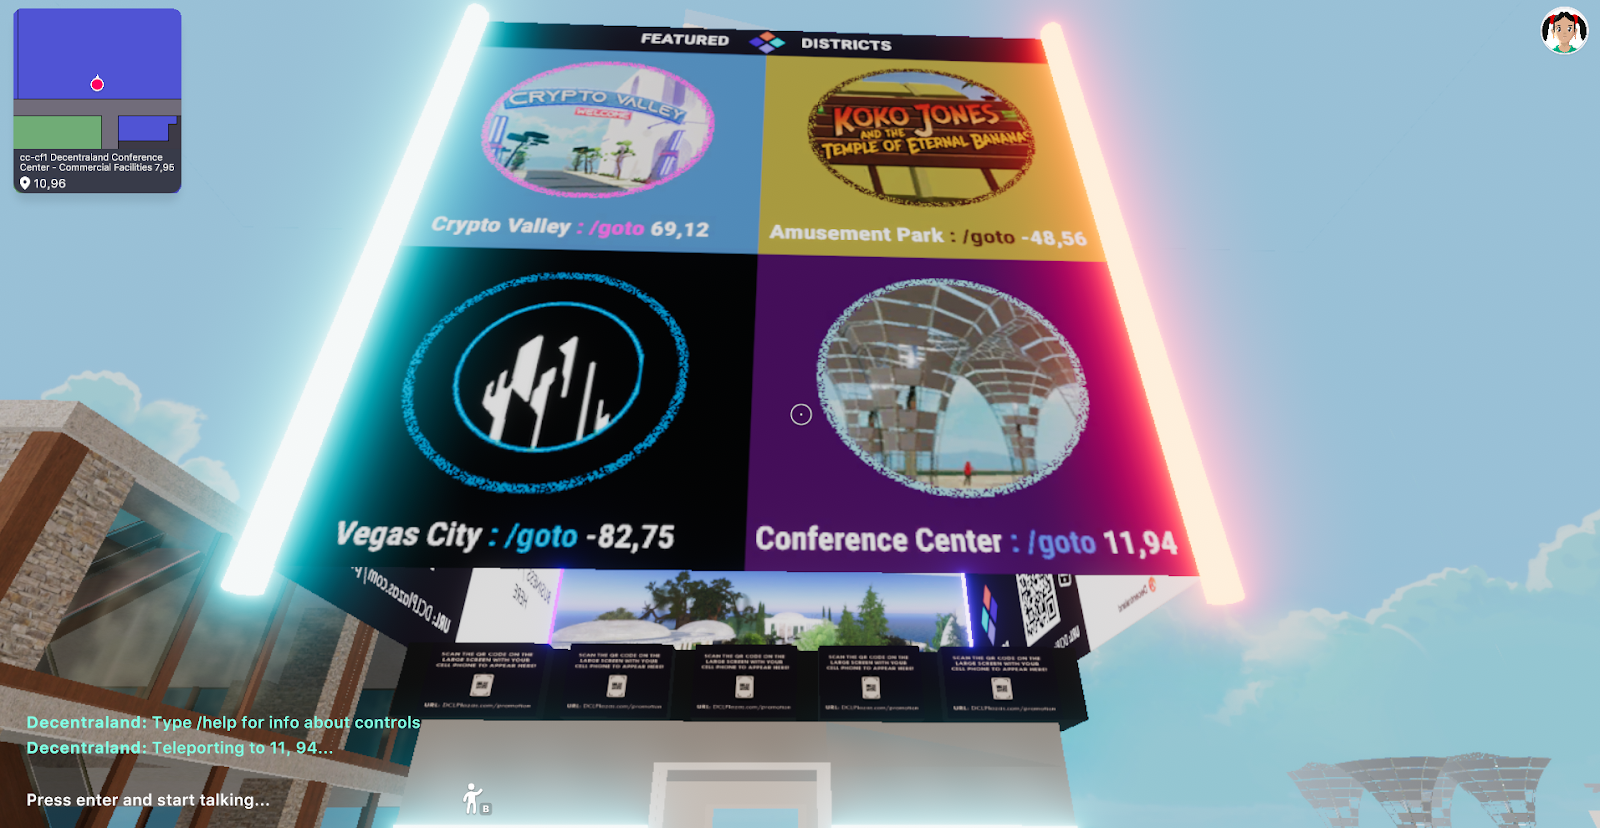 In-world screenshot of the Conference Center